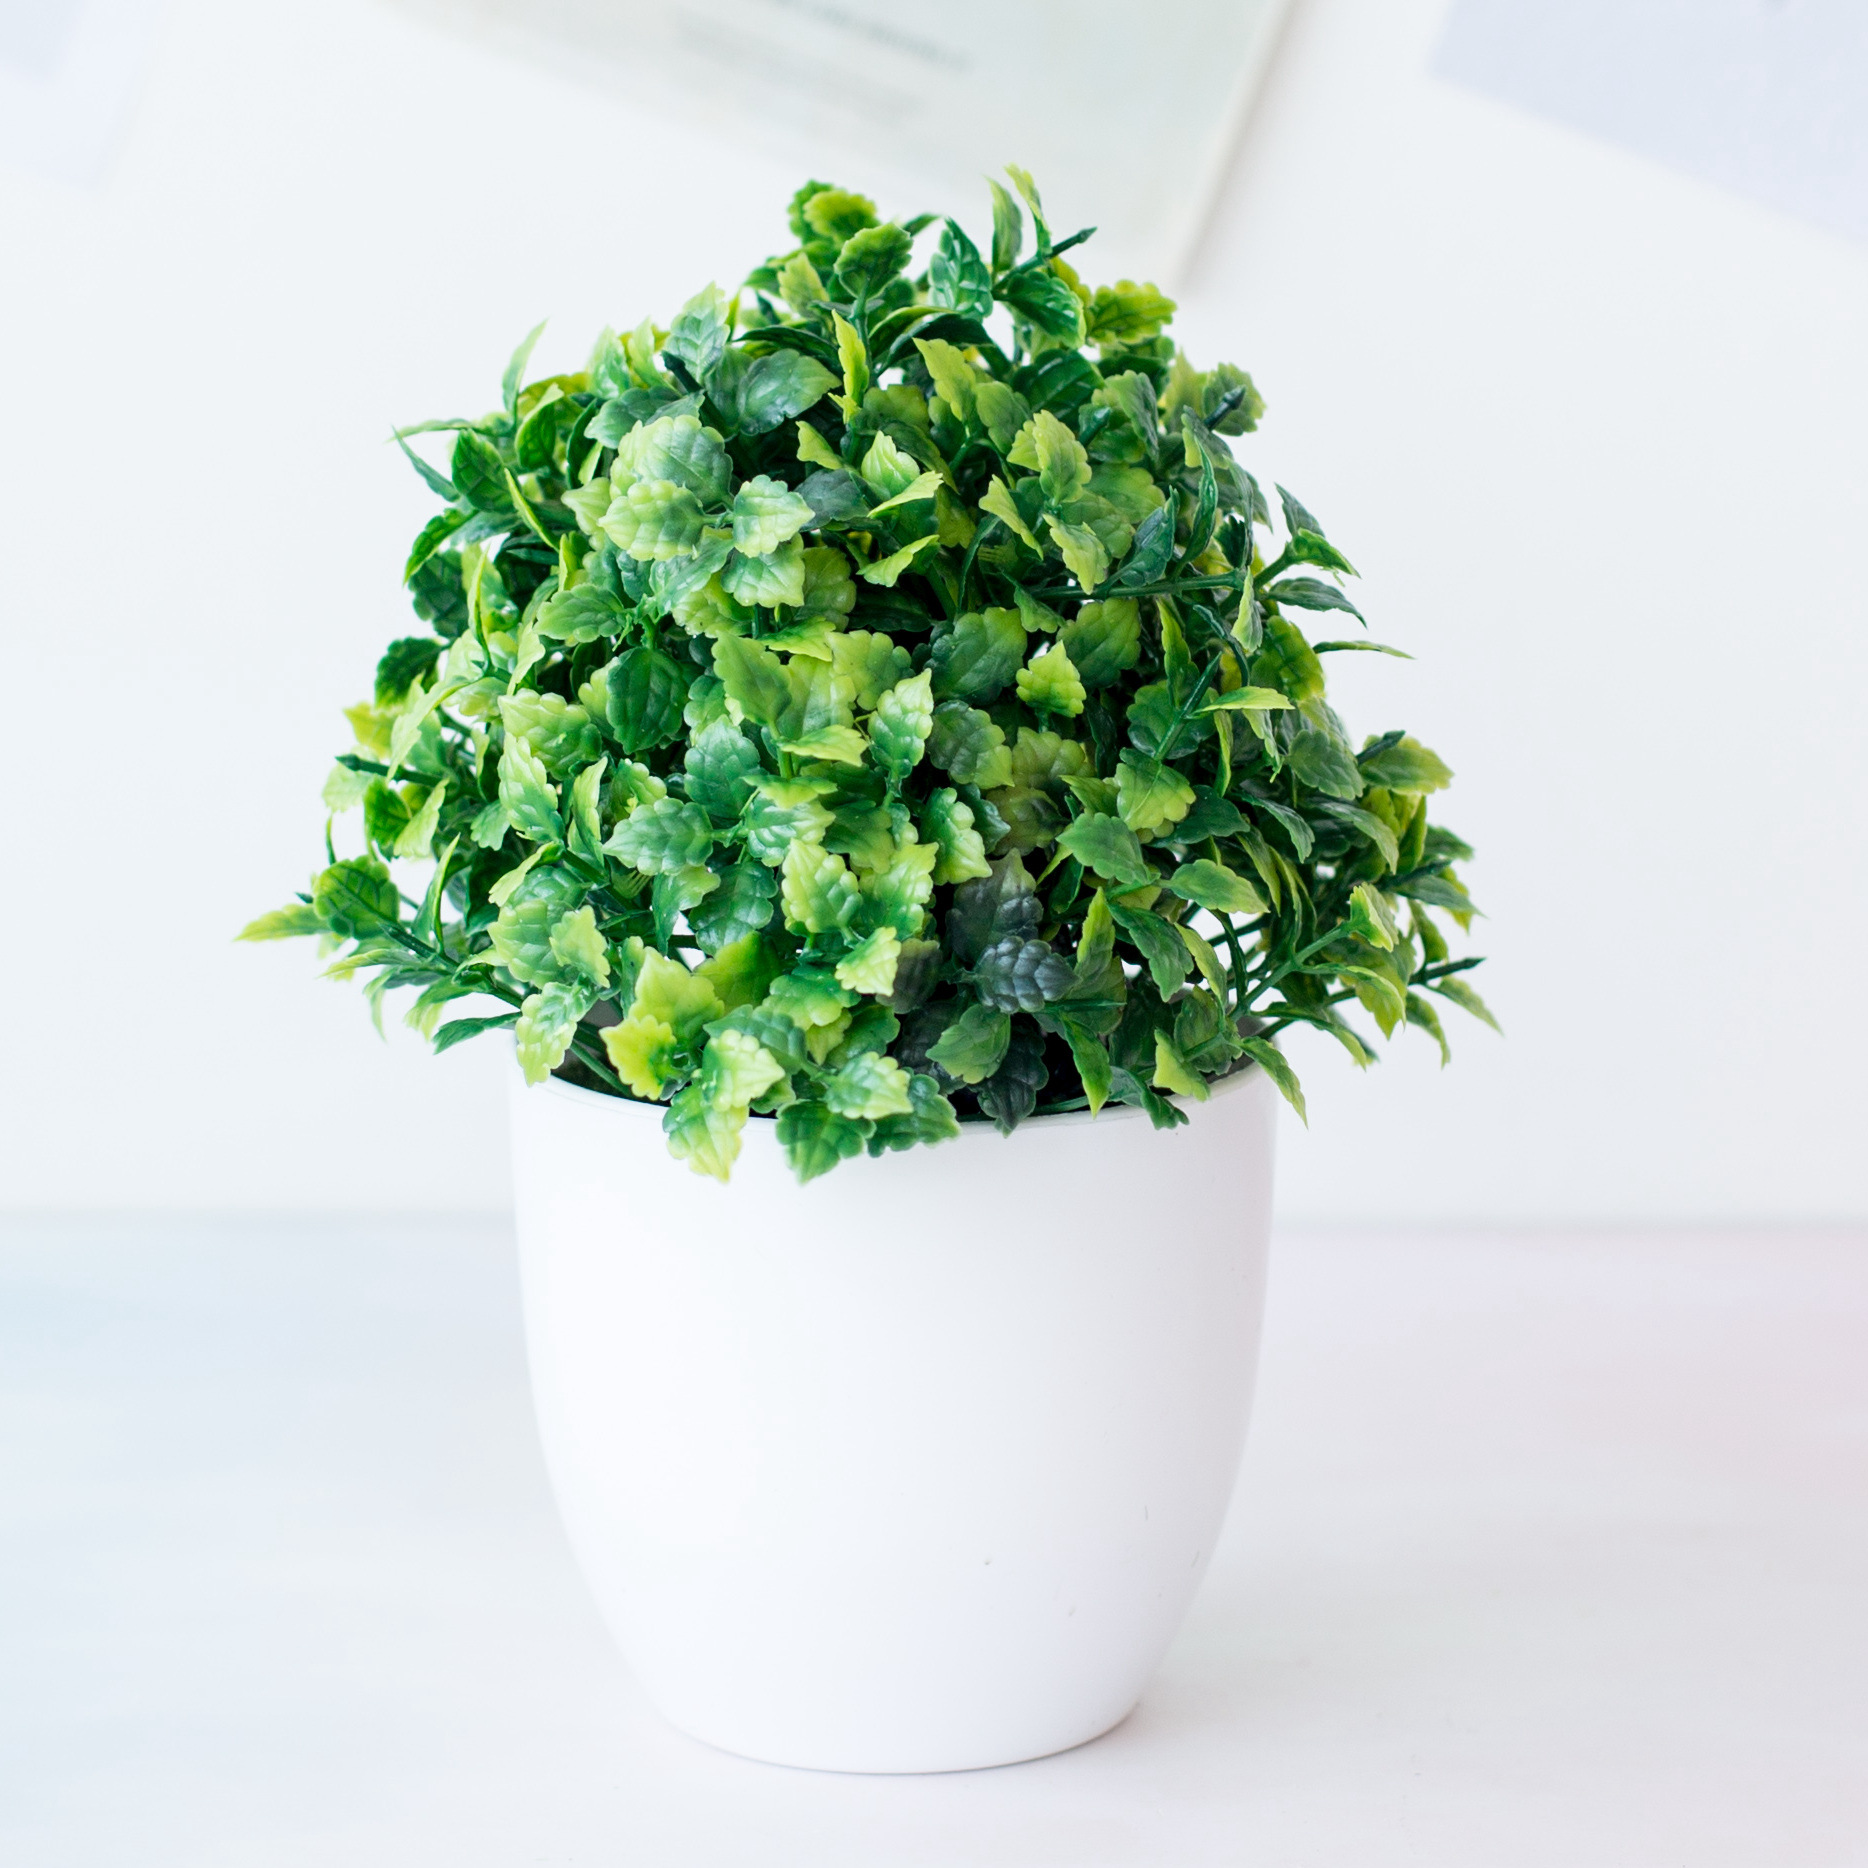 1pc Artificial Plants Green Bonsai Small Tree Pot Plants Fake Flower Potted Ornaments for Home Decoration Craft Plant Decorative 4